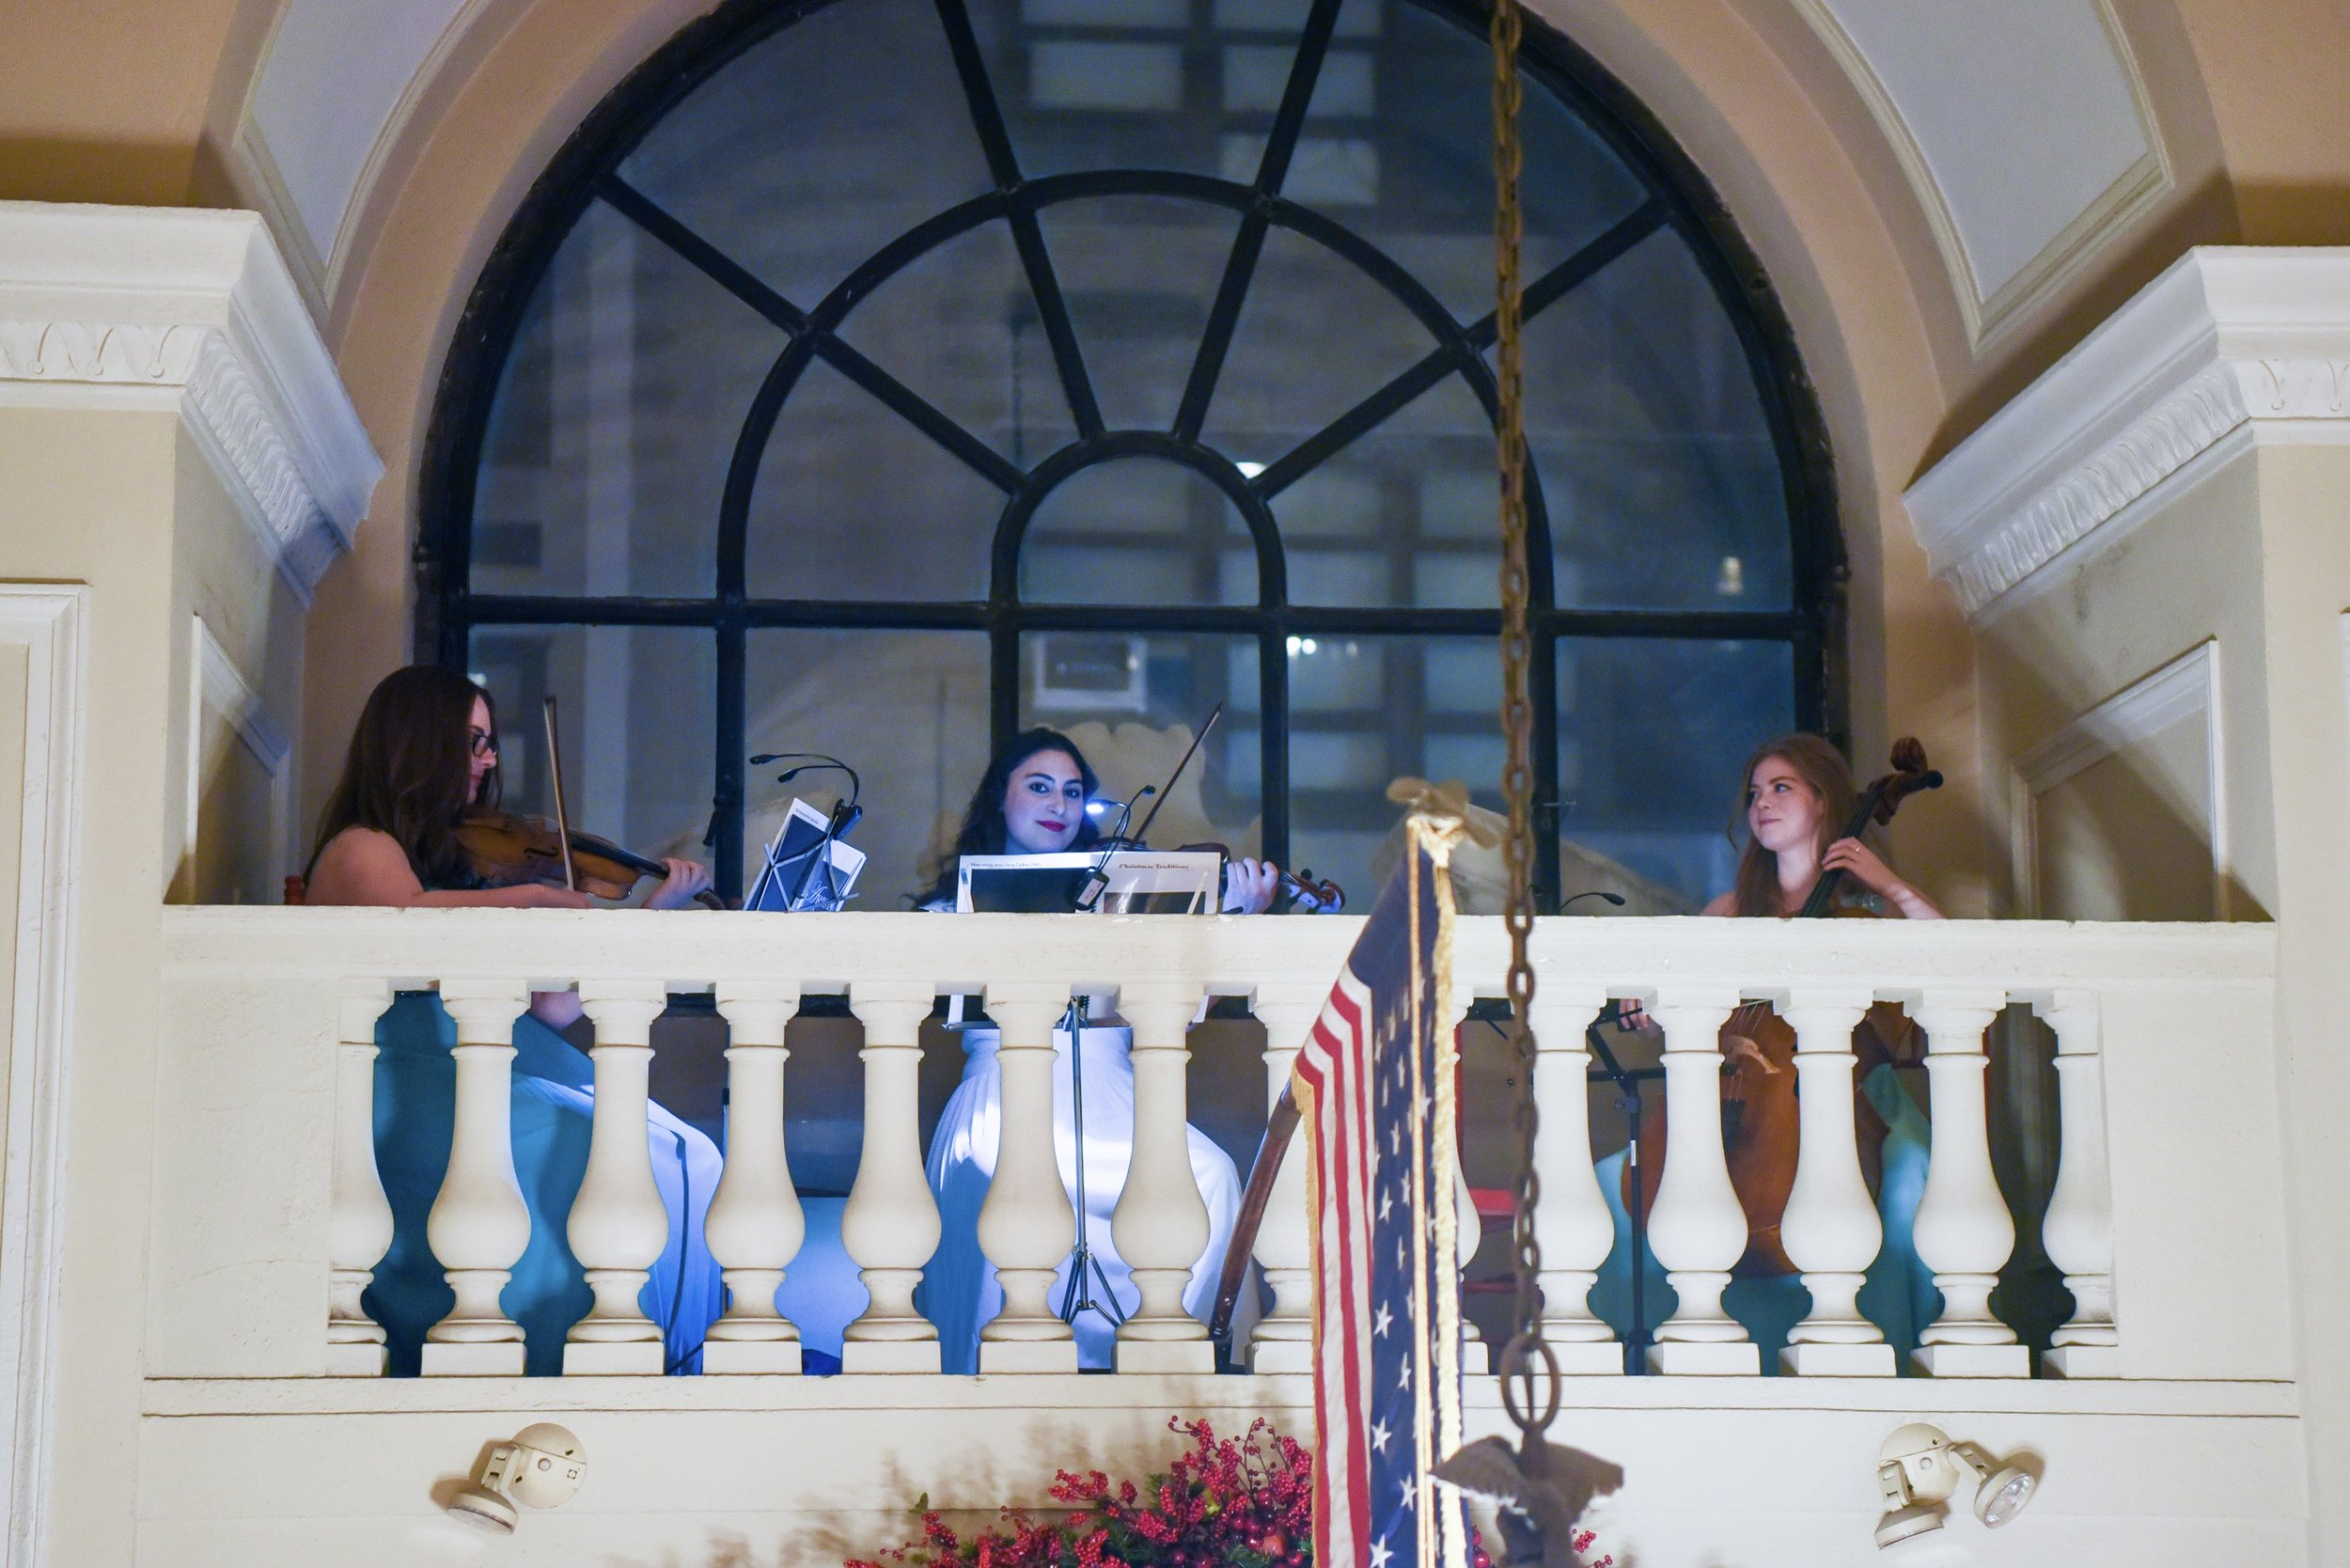 CLASSICAL MUSIC TRIO FROM JUILLIARD PERFORMING ON HIDDEN BALCONY